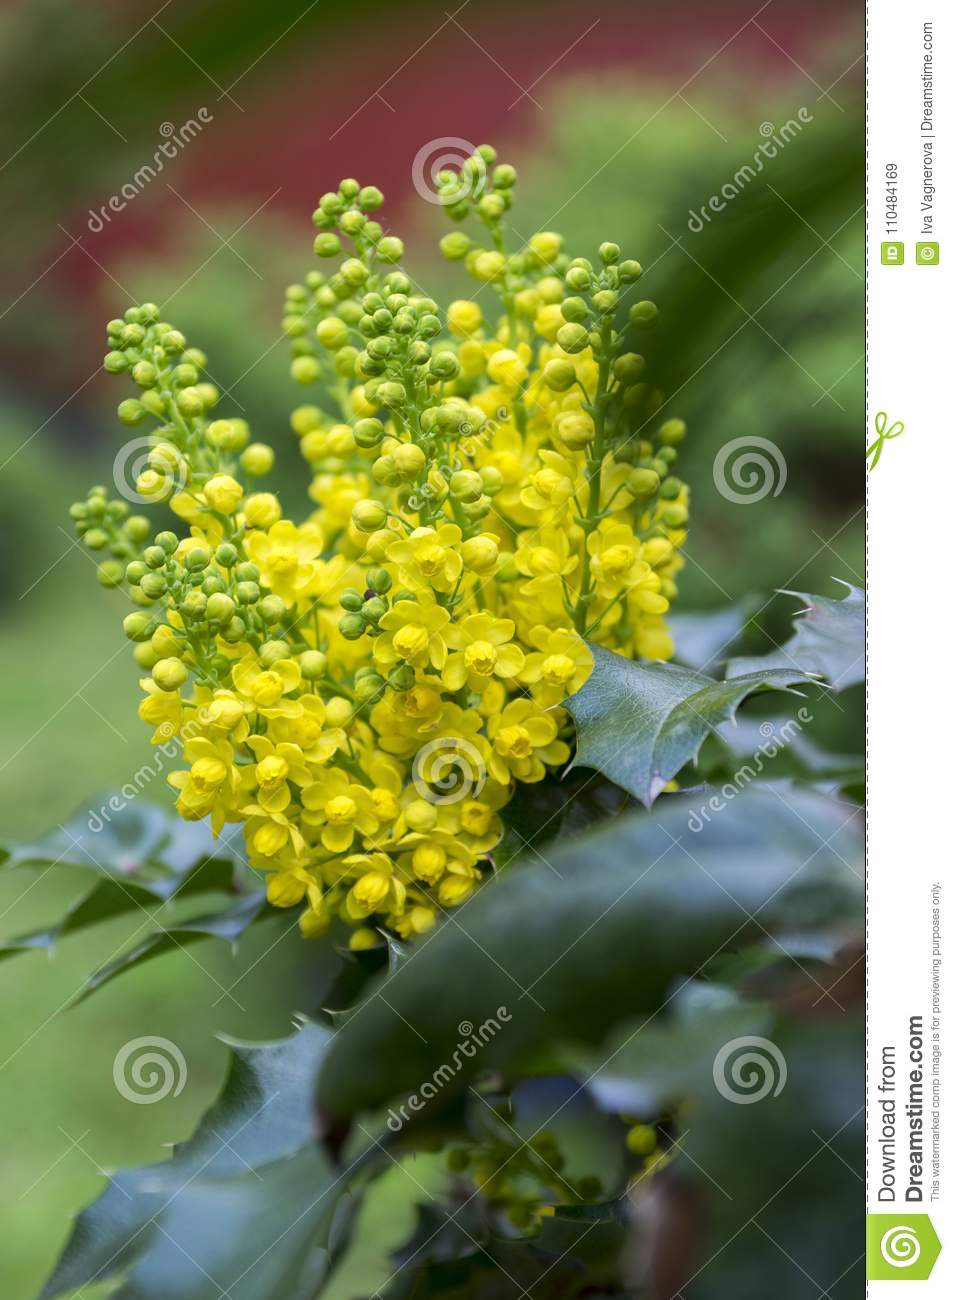 Mahonia aquifolium shrub with yellow flower stock image image of mahonia aquifolium shrub with yellow flower evergreen ornamental flowering bush sharp spiny leaves yellow flowers and buds mightylinksfo